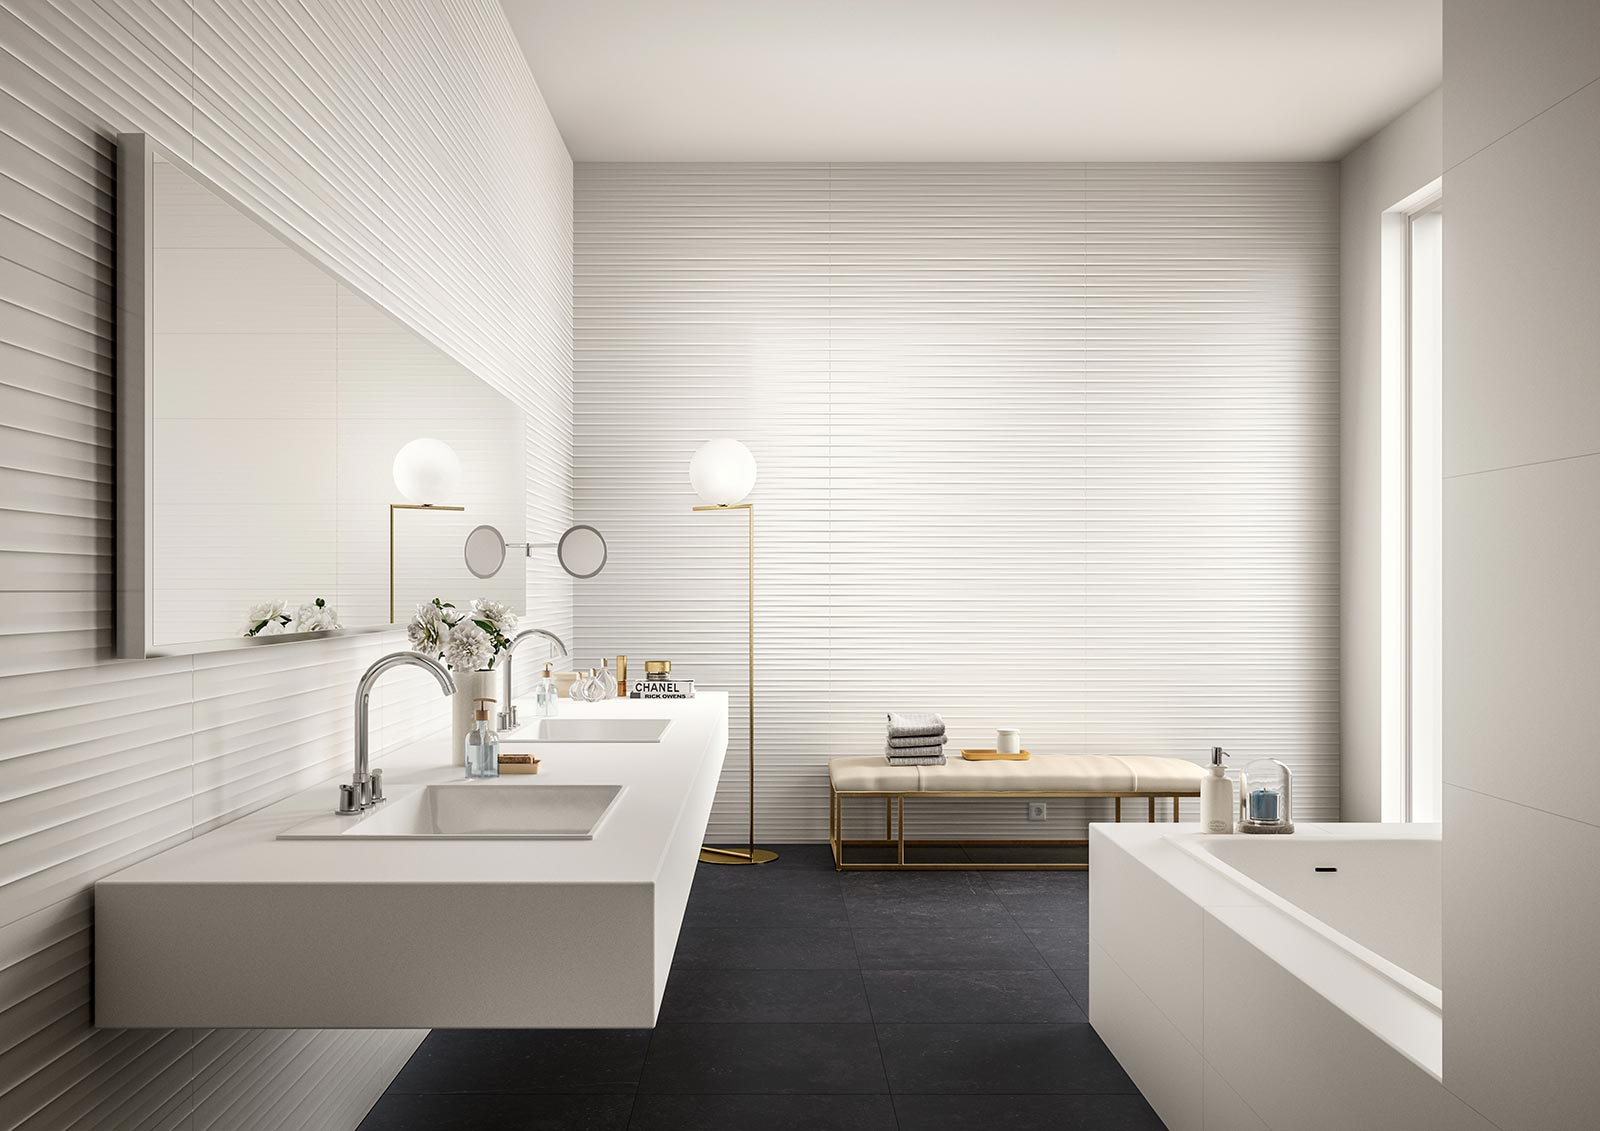 Bathroom Flooring Ceramic And Porcelain Stoneware